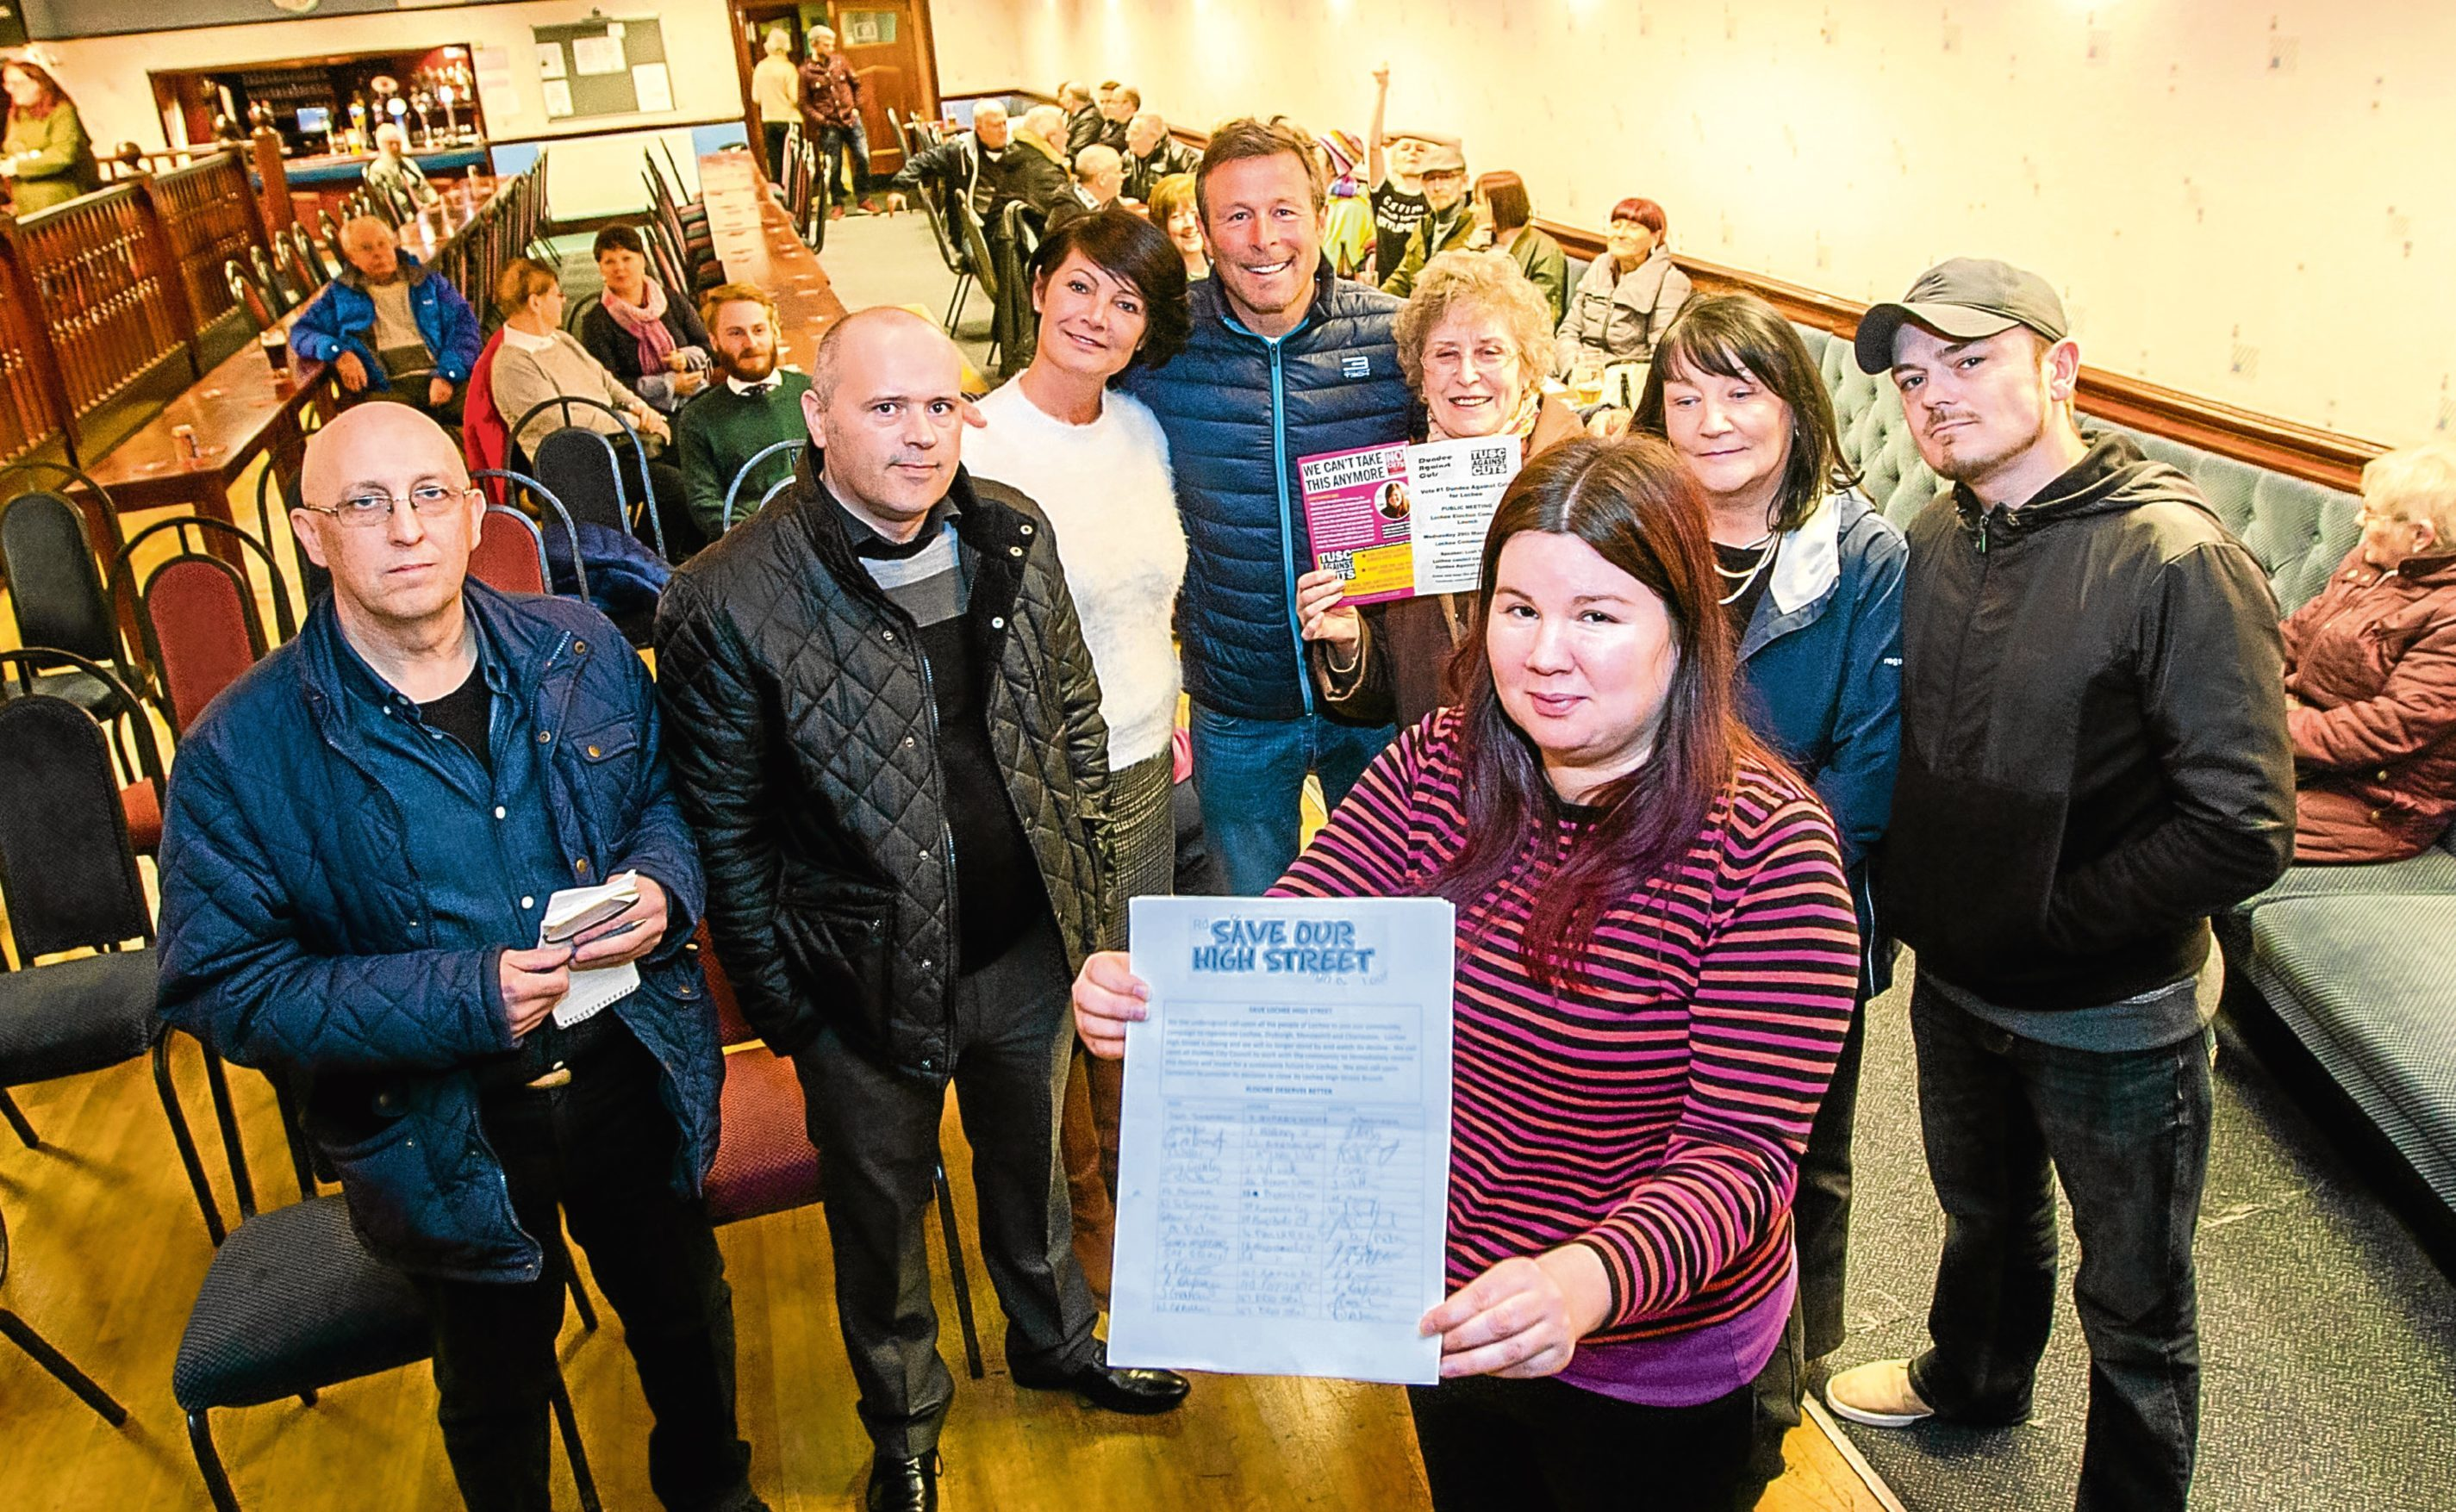 Leah Ganley (organiser, front) holds the signed petition alongside Paul Smith (far left, Lochee trader) next to Ian Mckay (chair of the event)